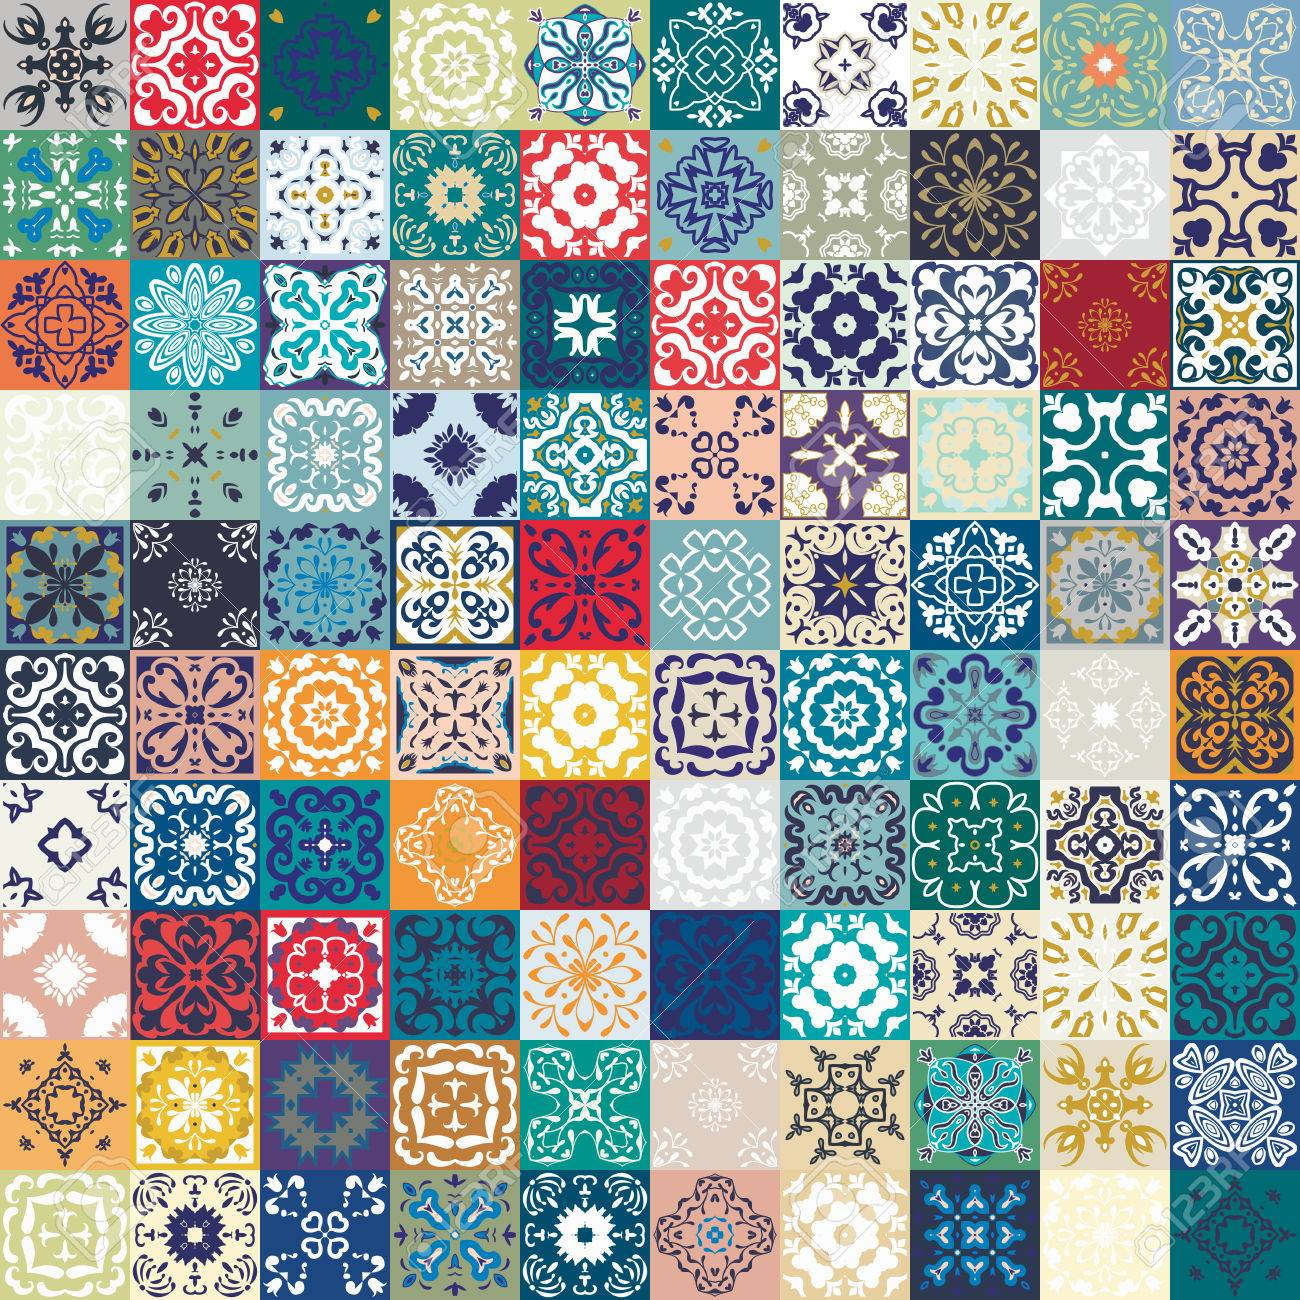 Mega Gorgeous seamless patchwork pattern from colorful Moroccan tiles, ornaments. - 55091961